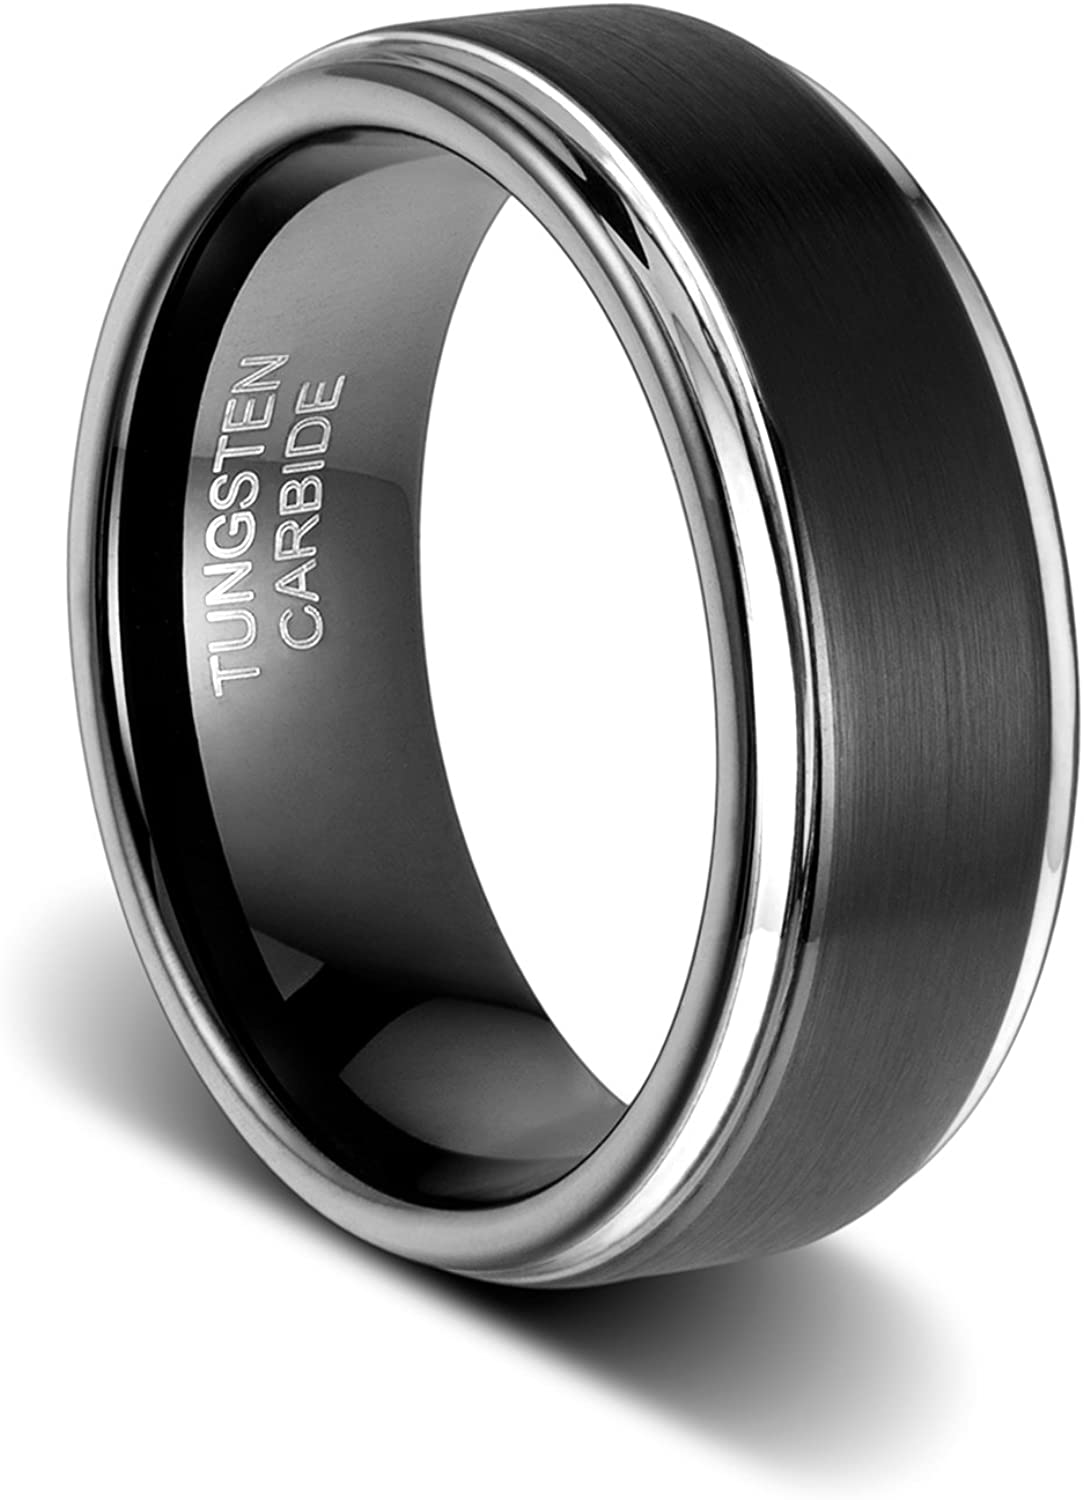 TUSEN JEWELRY 8mm Mens Wedding Band Black Tungsten Carbide Ring Matte Brushed Step Edge